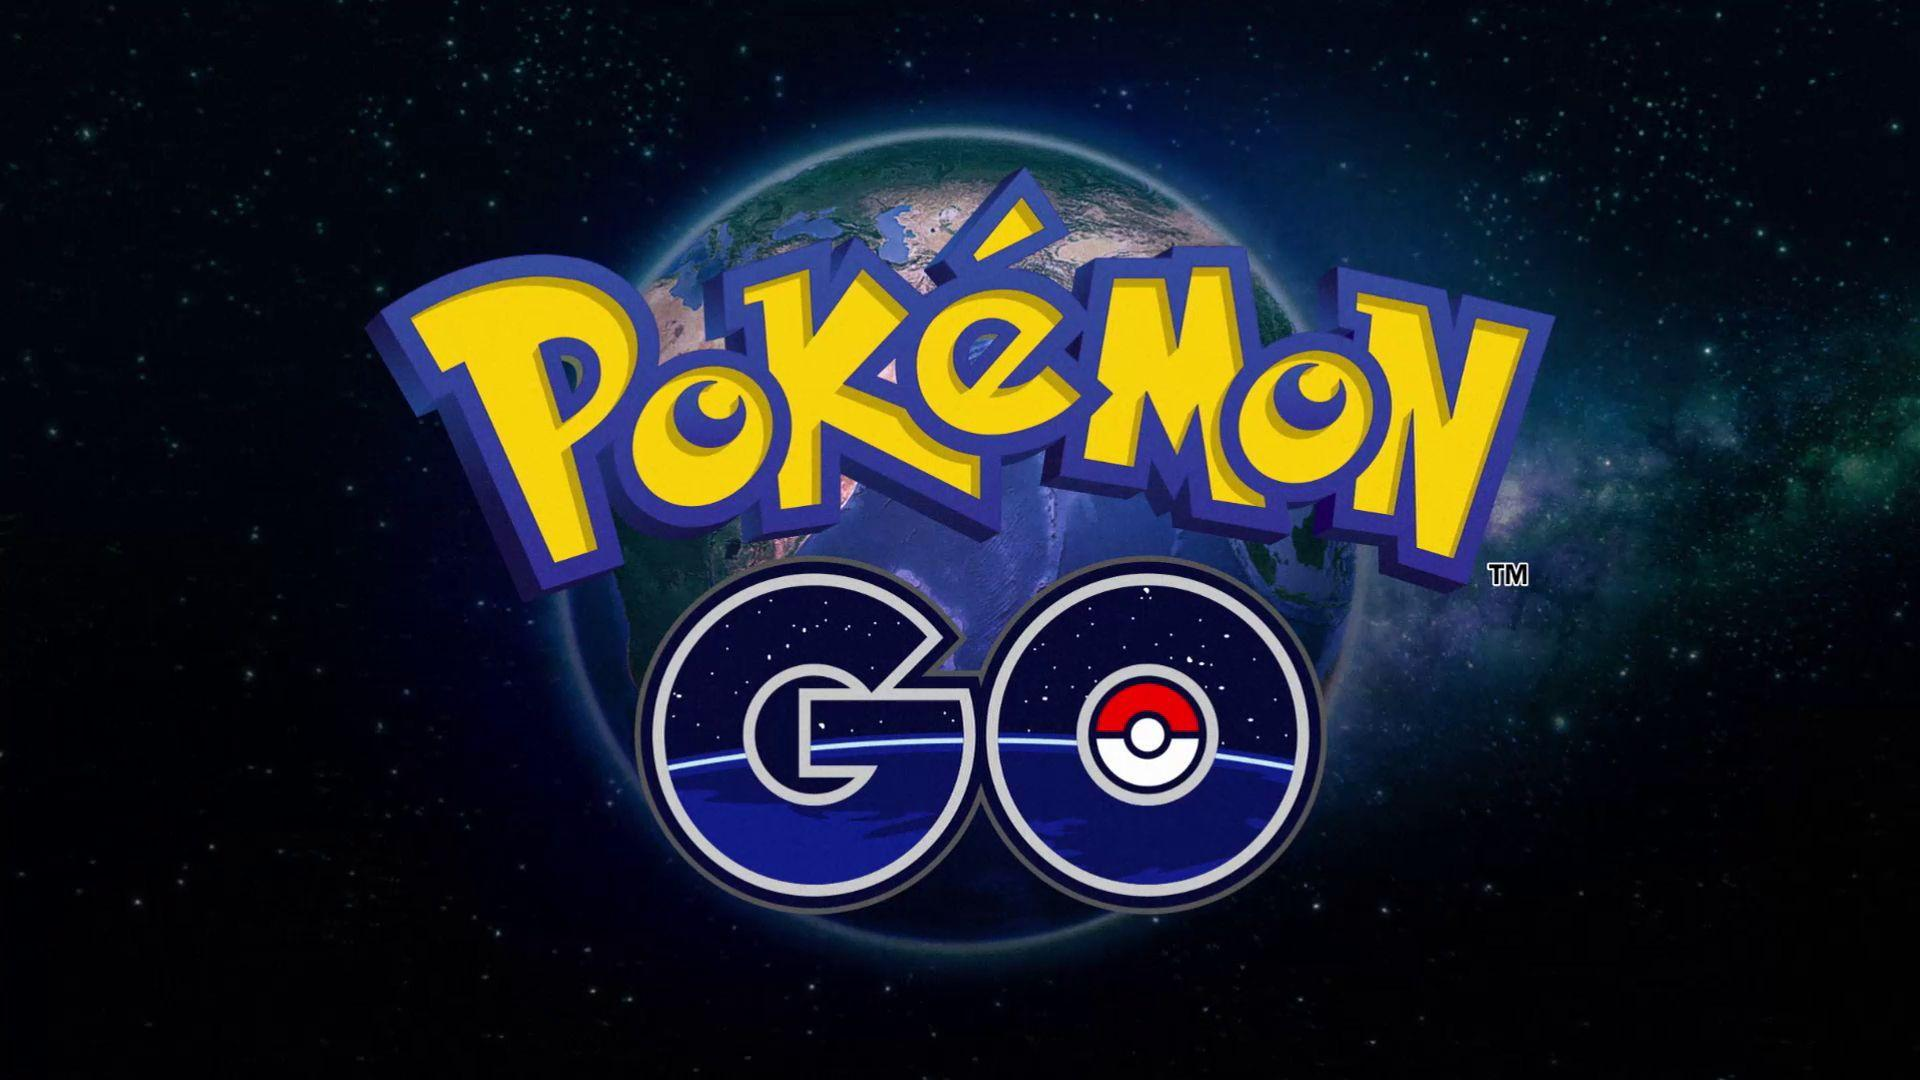 Pokemon Go Wallpapers High Quality